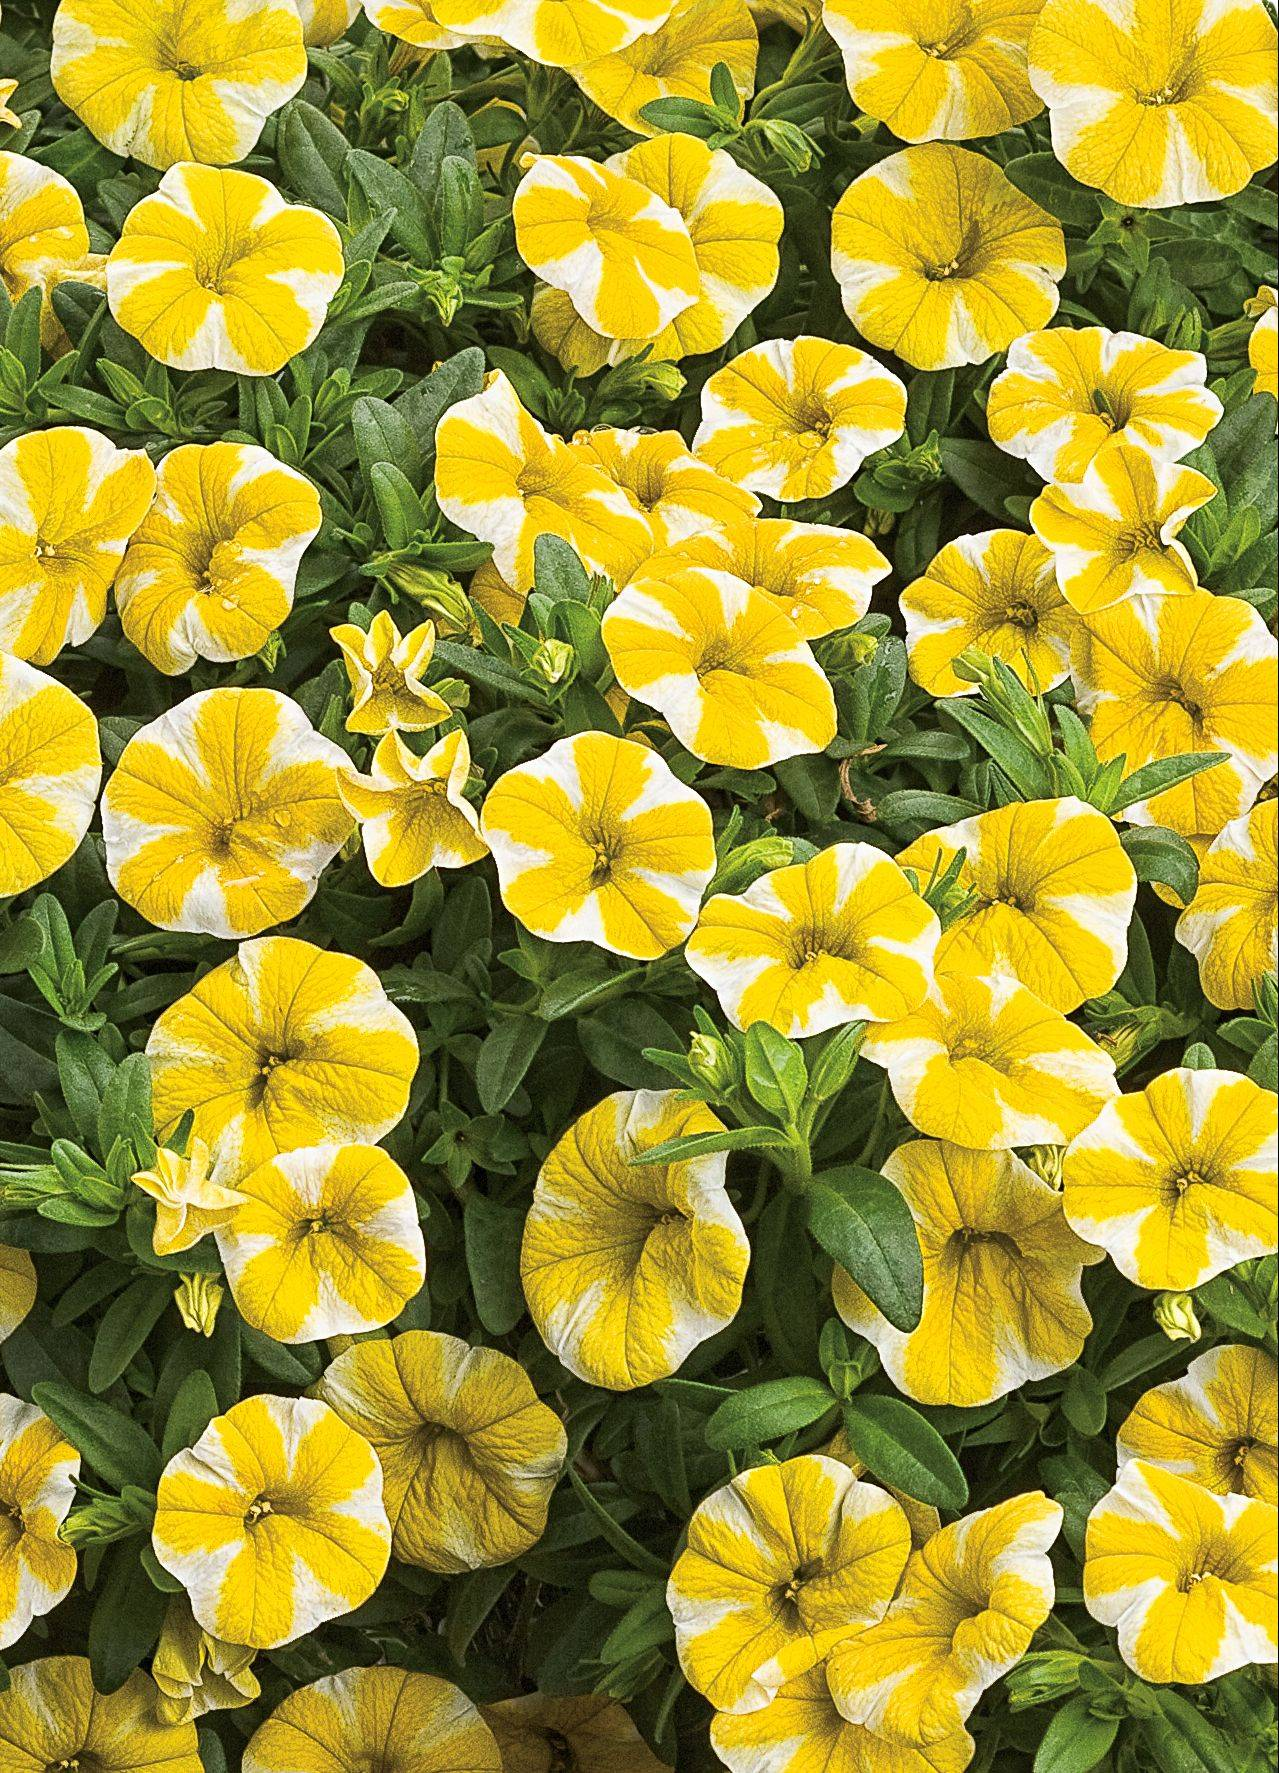 Superbells Lemon Slice by Proven Winners is a new petunialike flower that loves the sun and reaches up 6 to 10 feet.